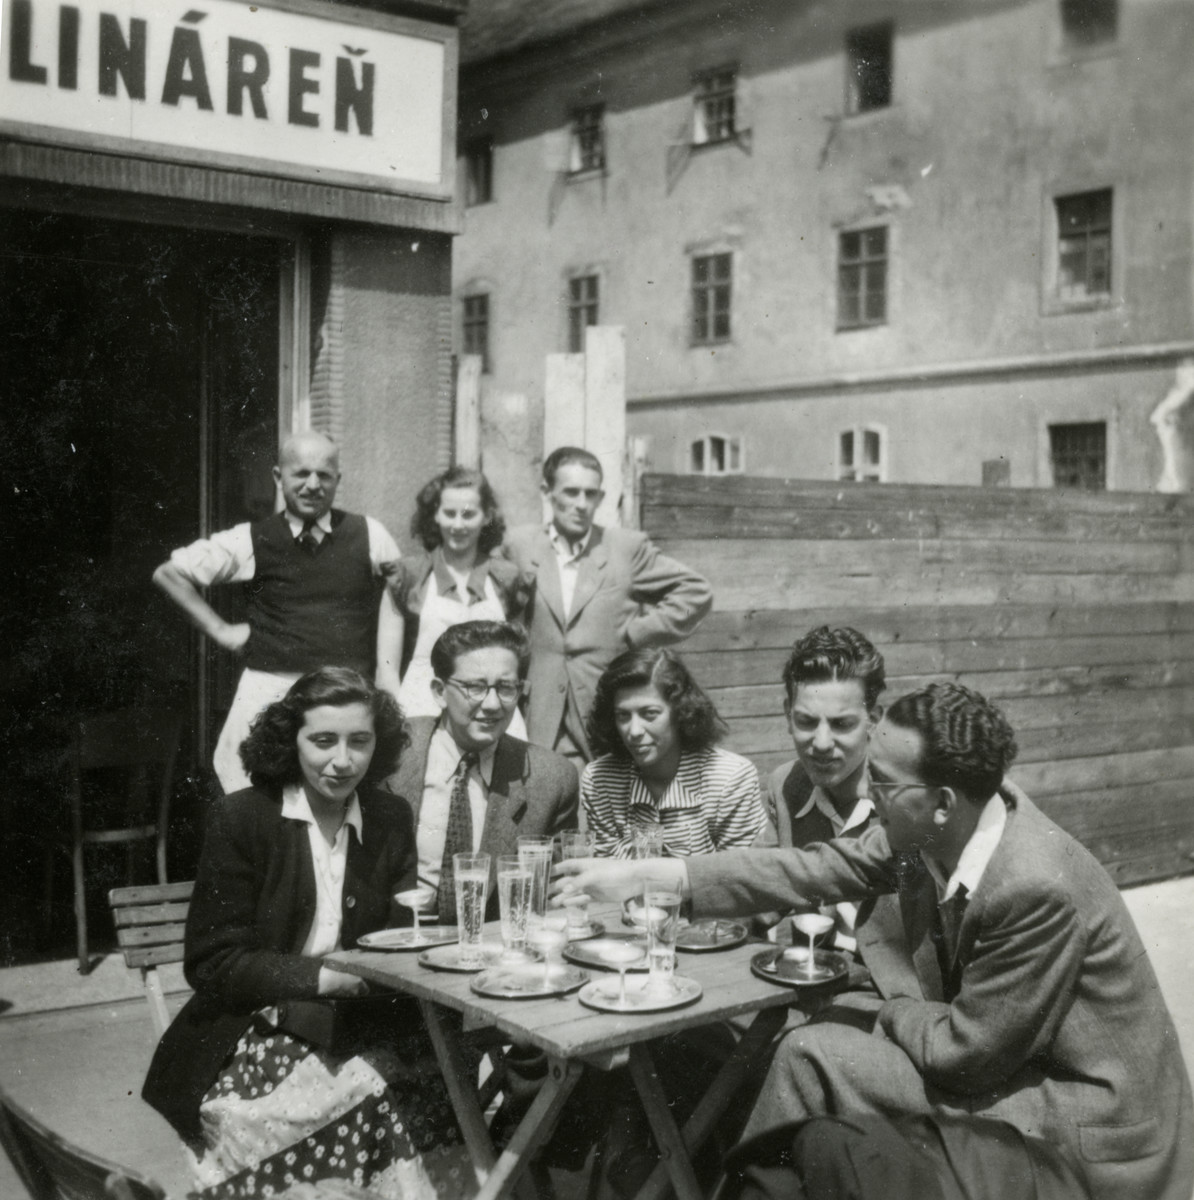 A group of friends from the Zionist youth group Gordonia stop at a cafe in Bratislava, on their way to Israel.  Pictured seated on the right are Zvi and Itzhak Braf.